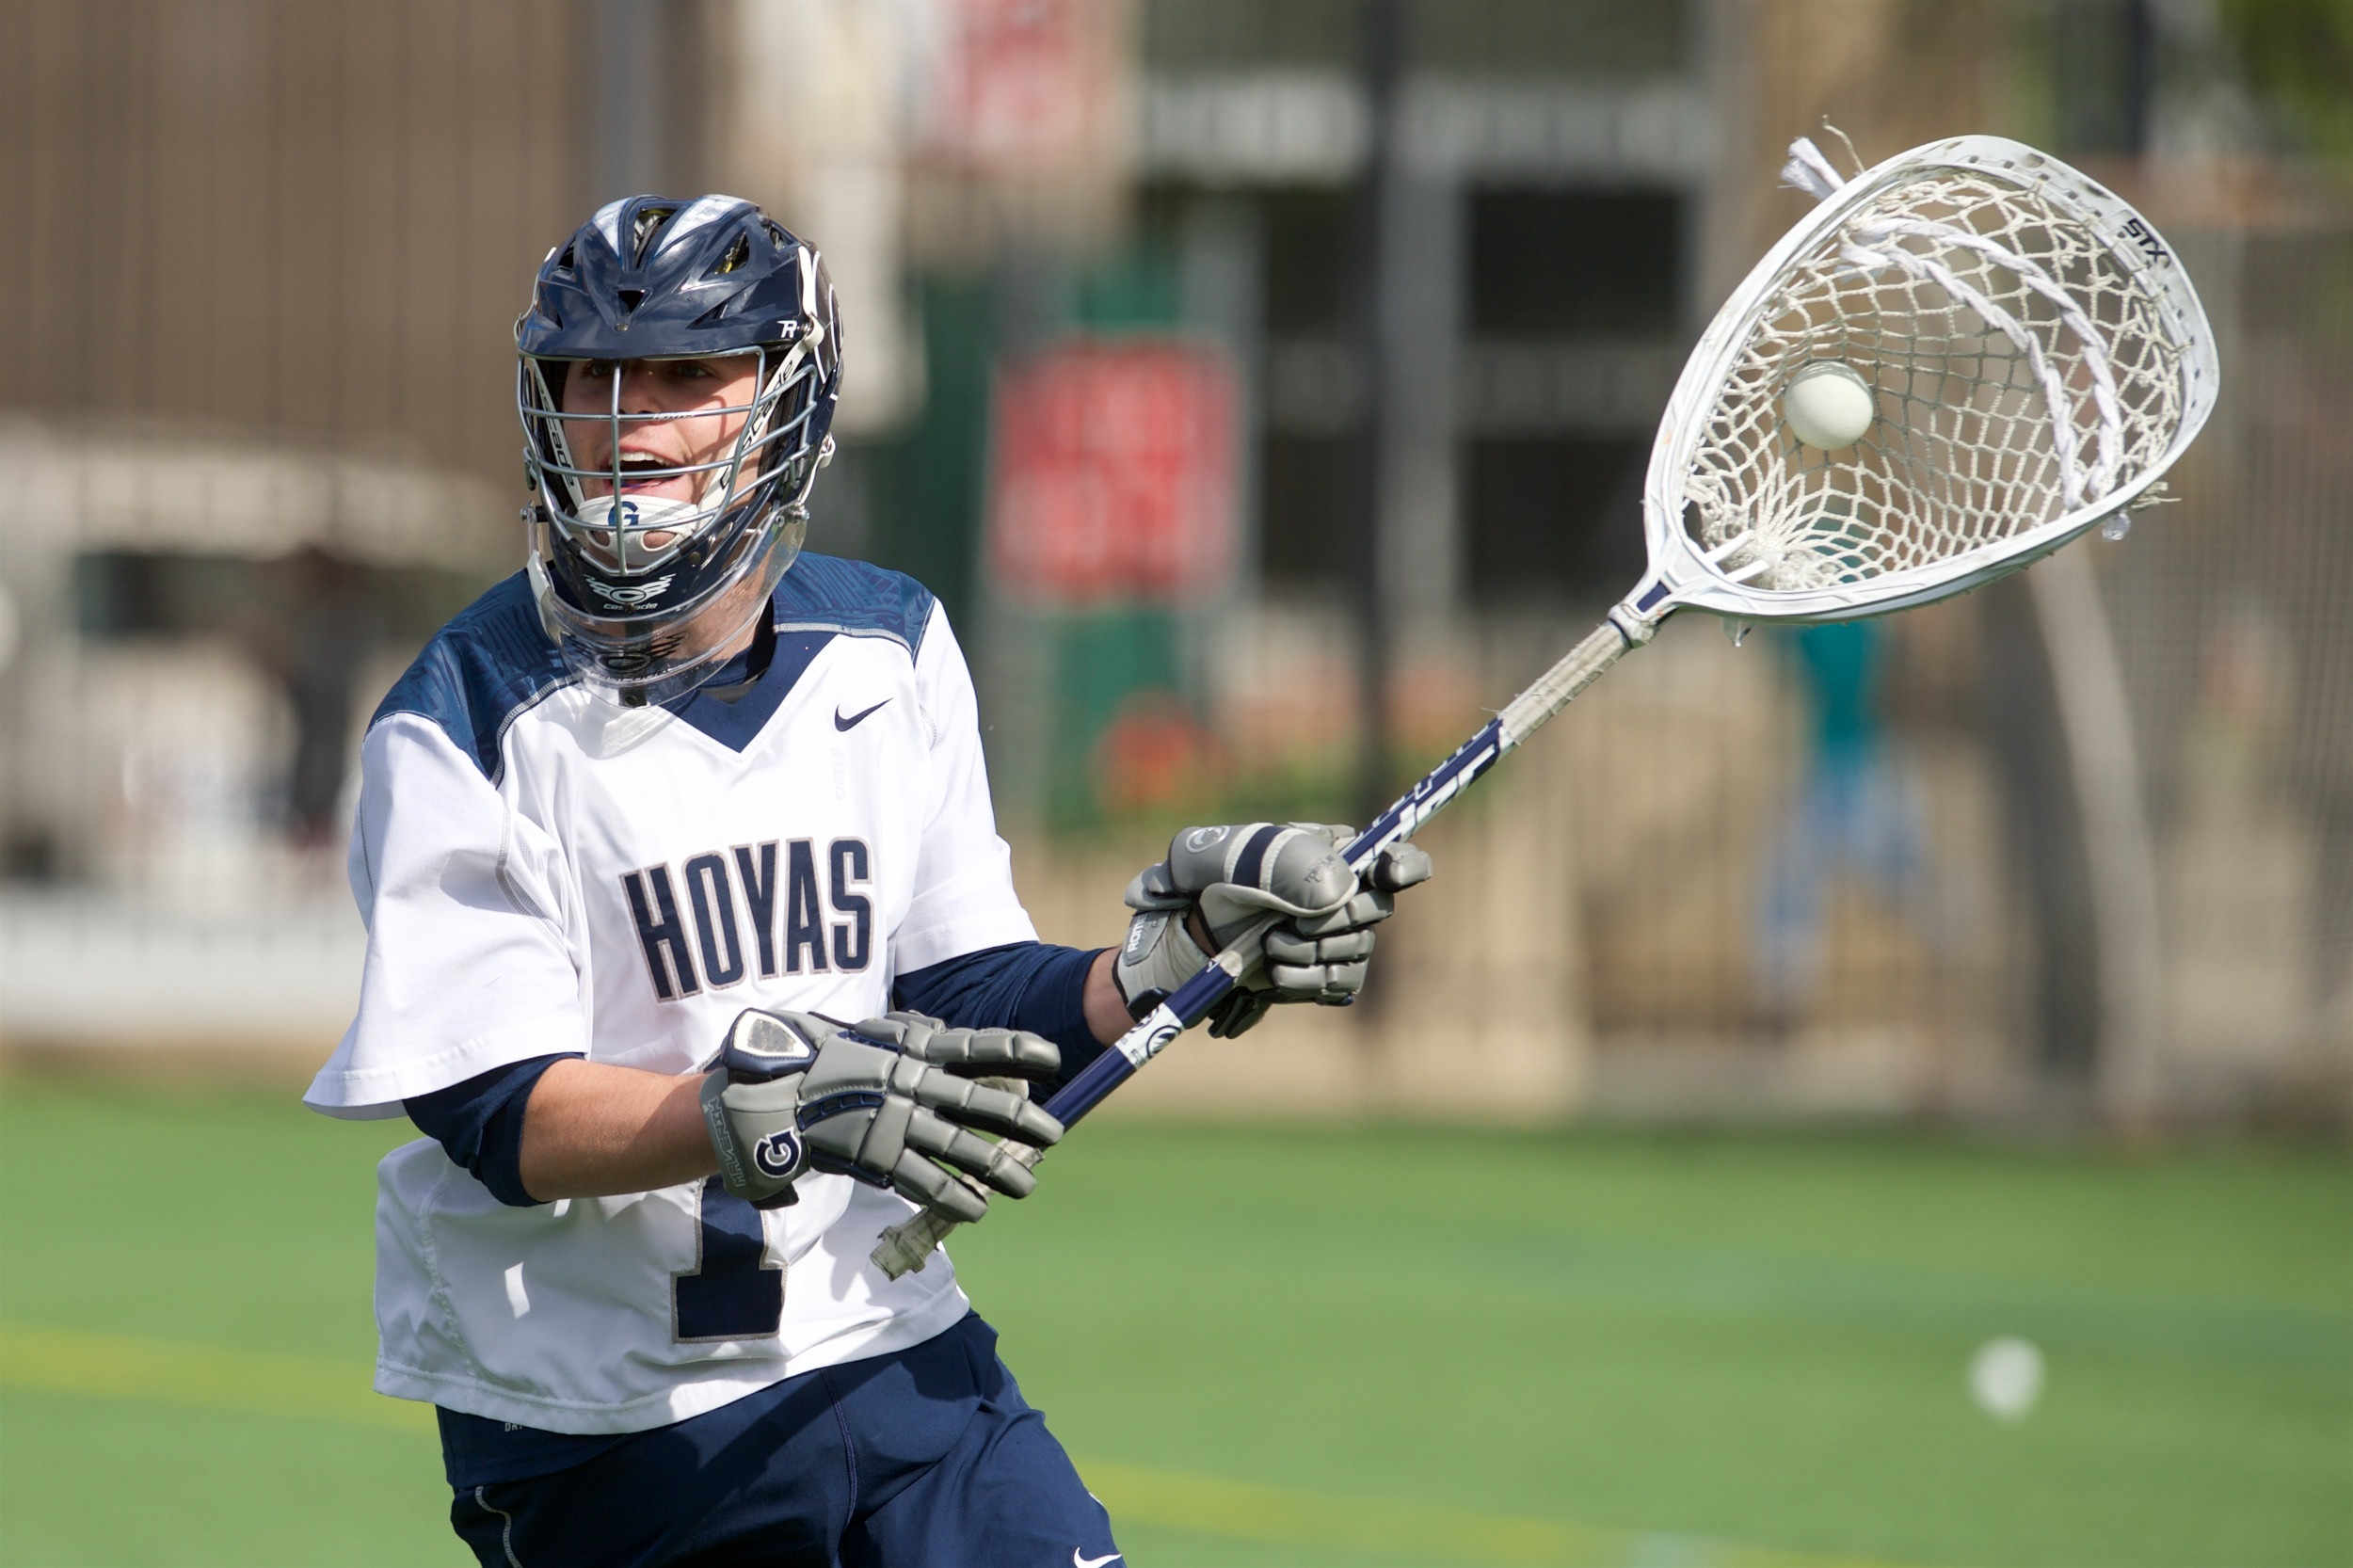 Nick Marrocco made 14 saves and allowed five goals in GU's win over Providence.